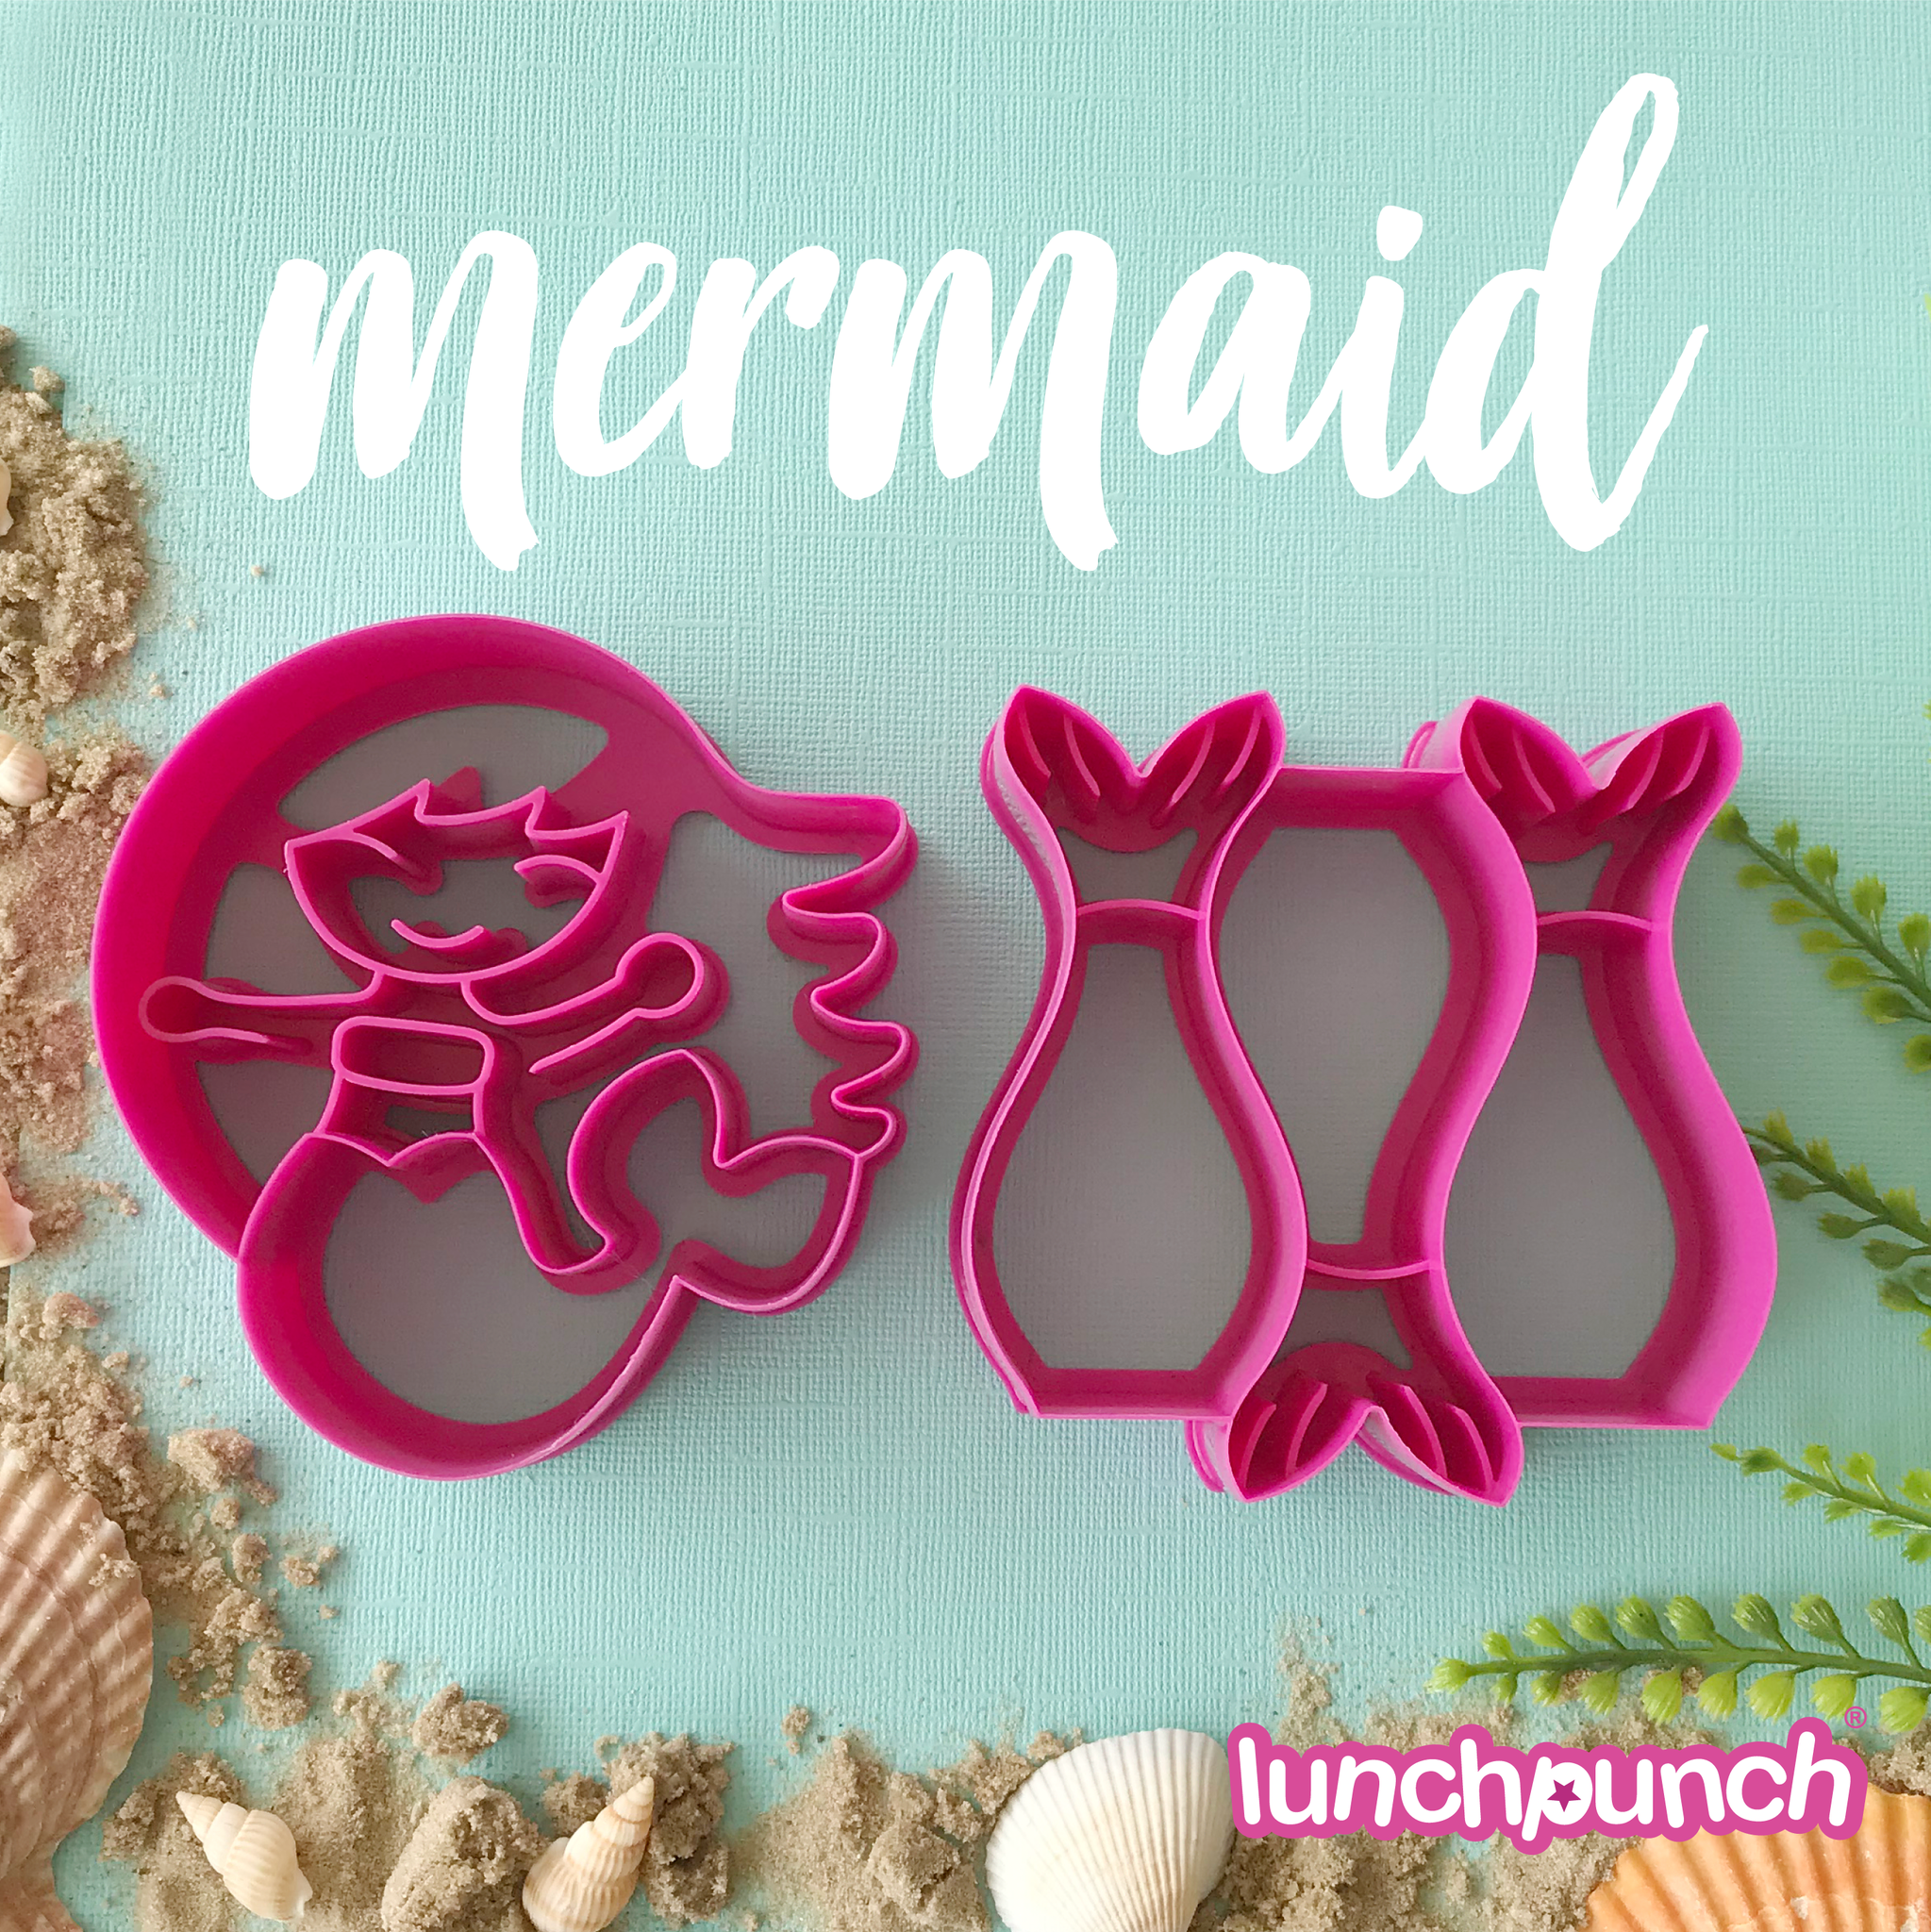 Lunch Punch Sandwich Cutters - Meermaid-8